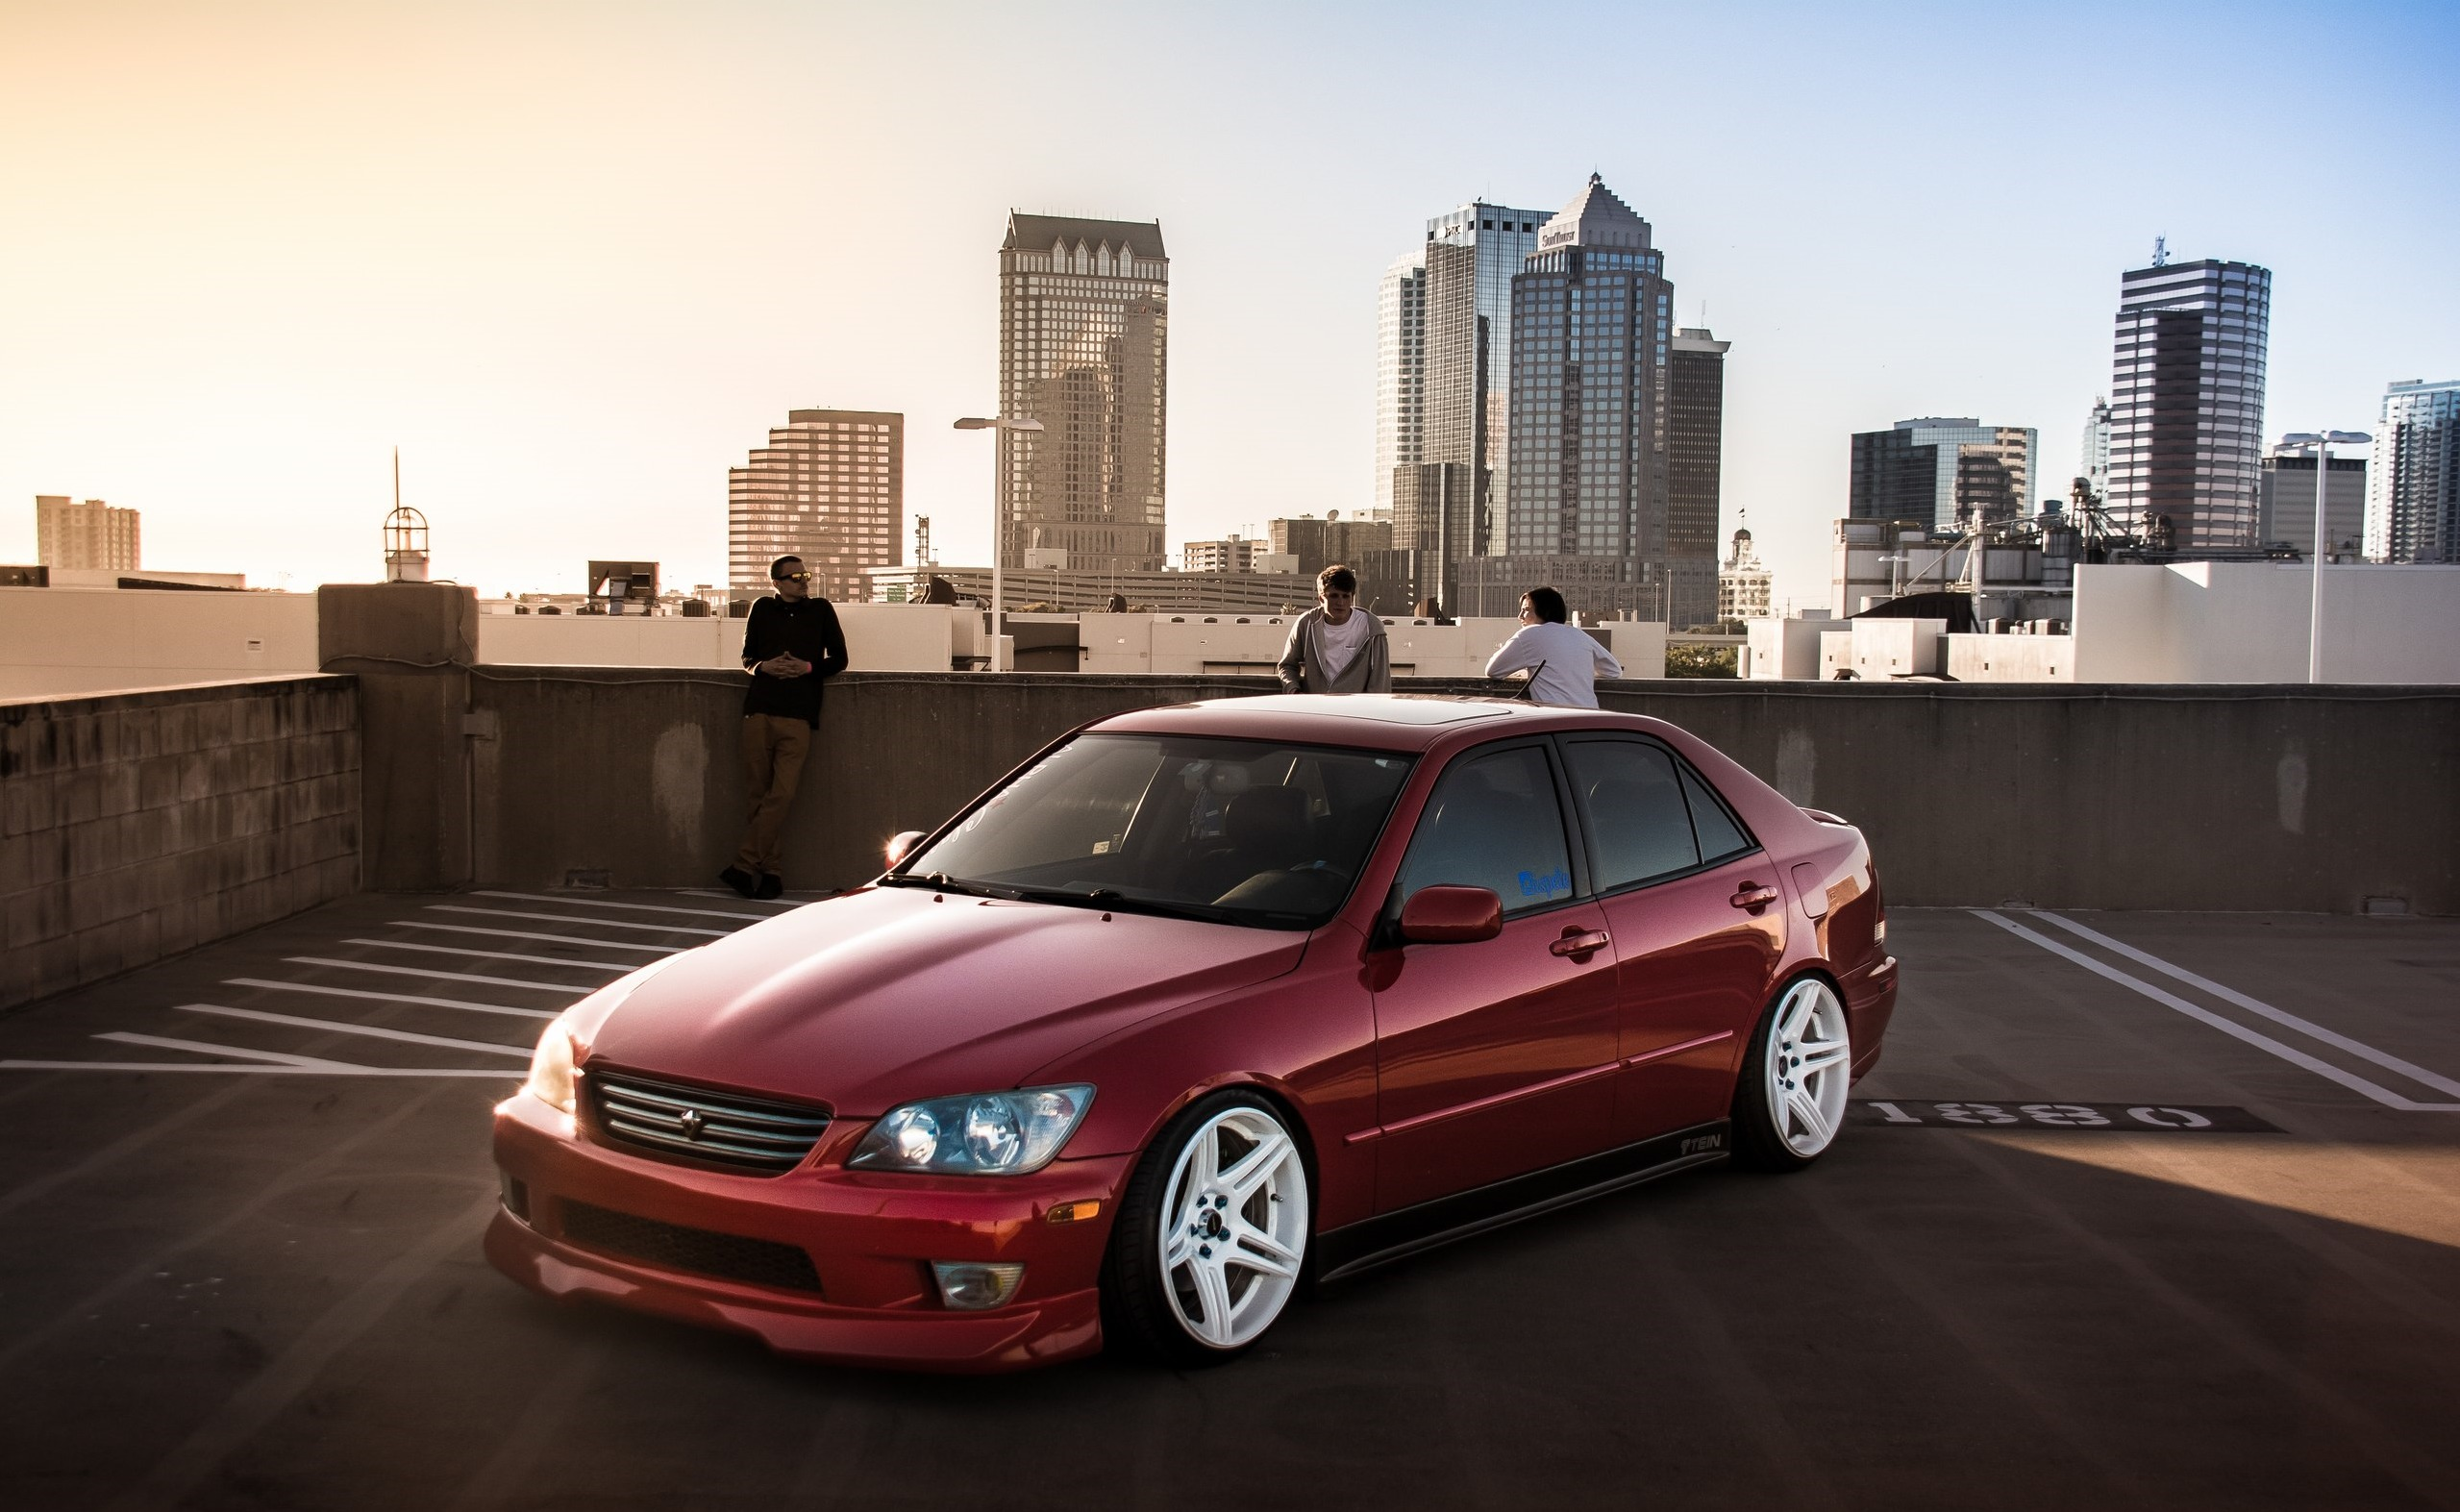 toyota altezza lexus is200 is300 tuning turbo jdm japan low. Black Bedroom Furniture Sets. Home Design Ideas